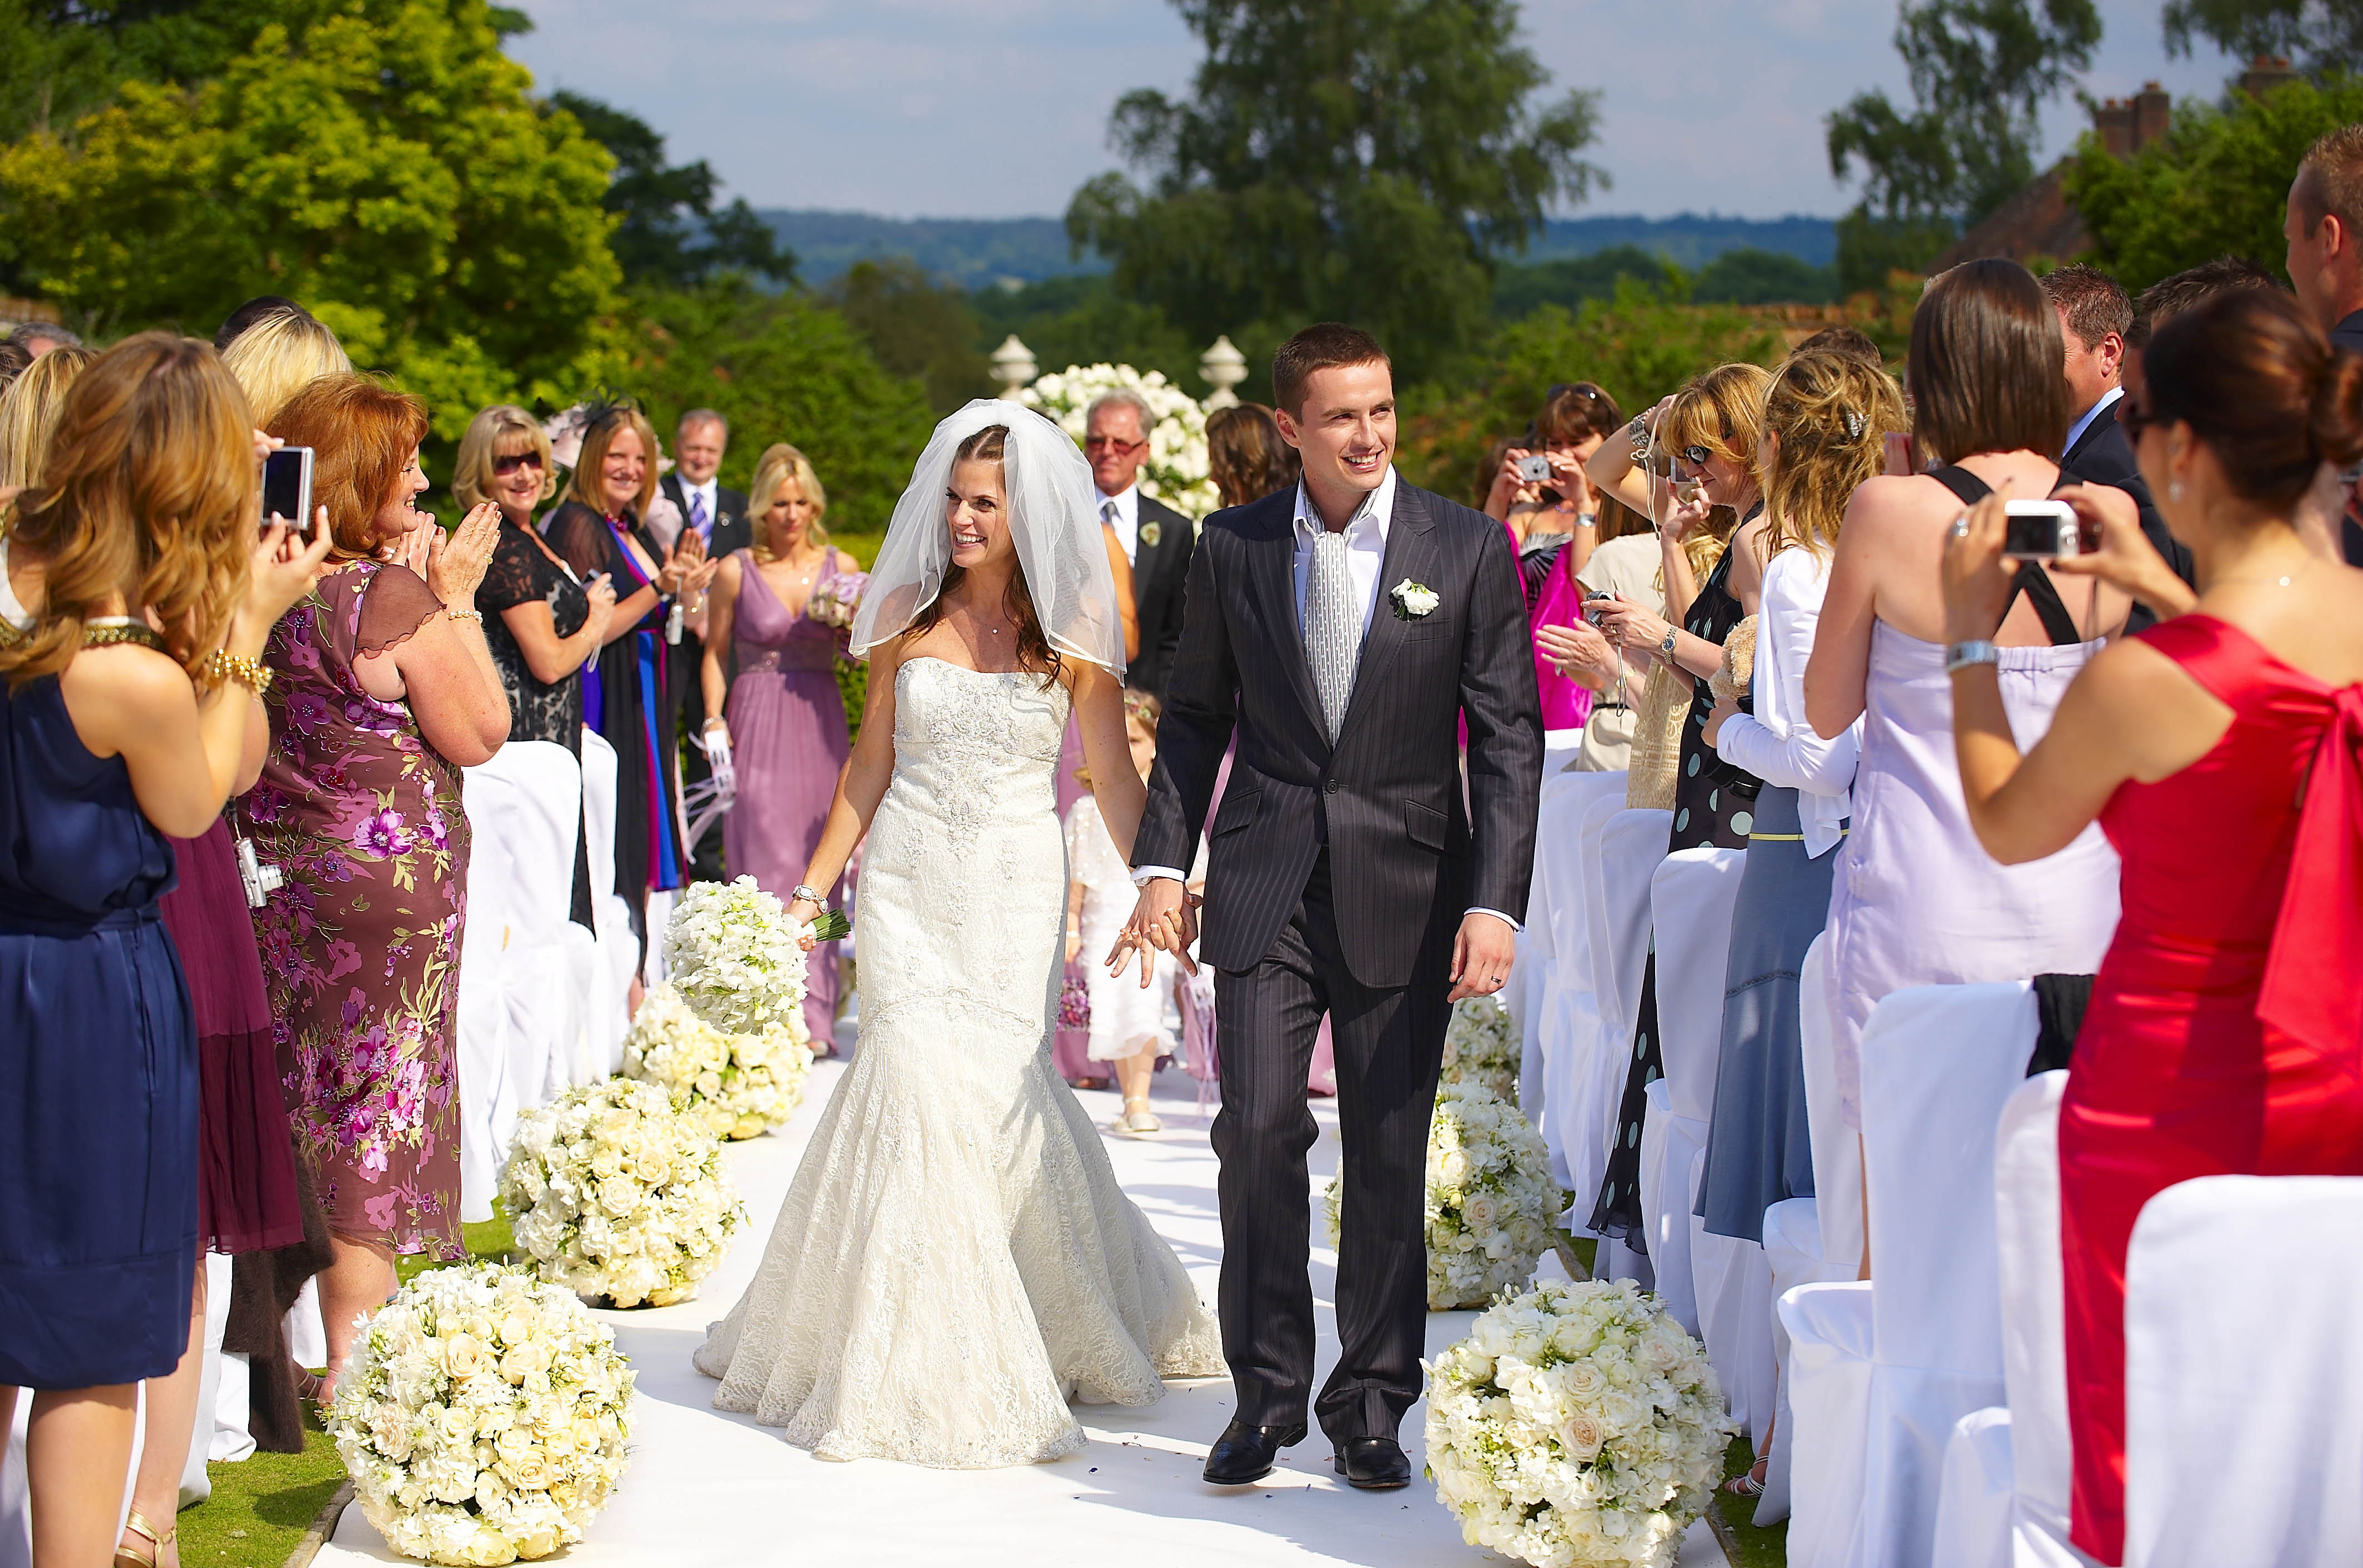 Real Weddings: A Beautiful 3 Day Outdoor Wedding